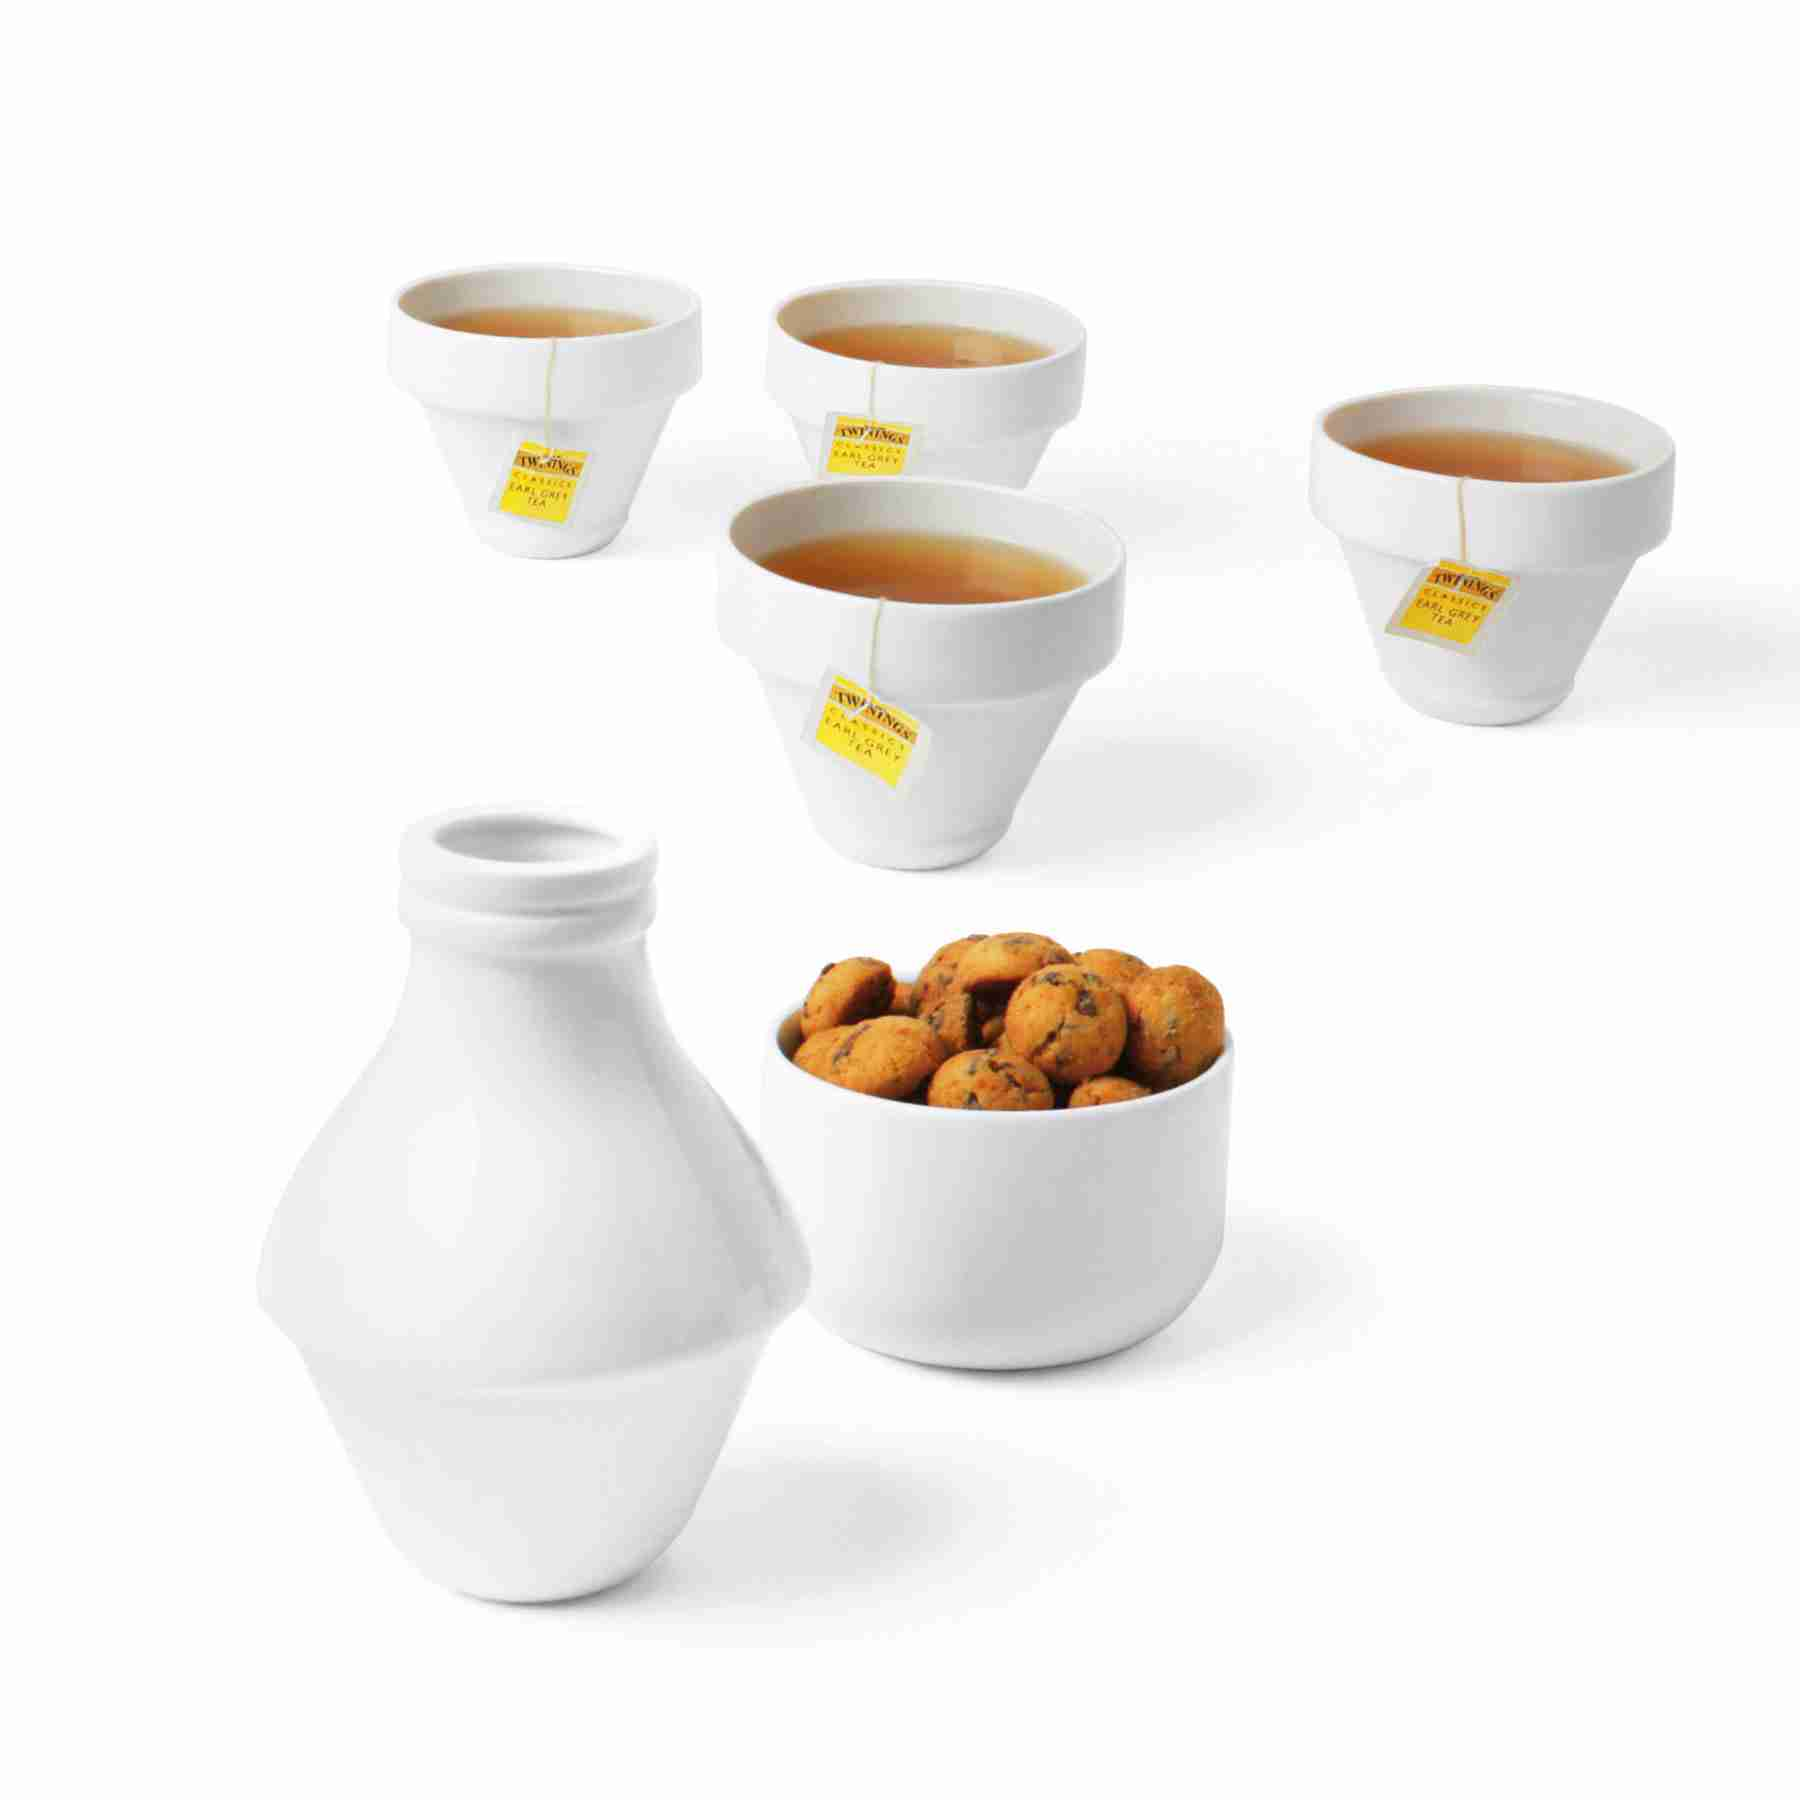 With Milk - Ceramic Set of Jar, Cups and Bowl by DOIY